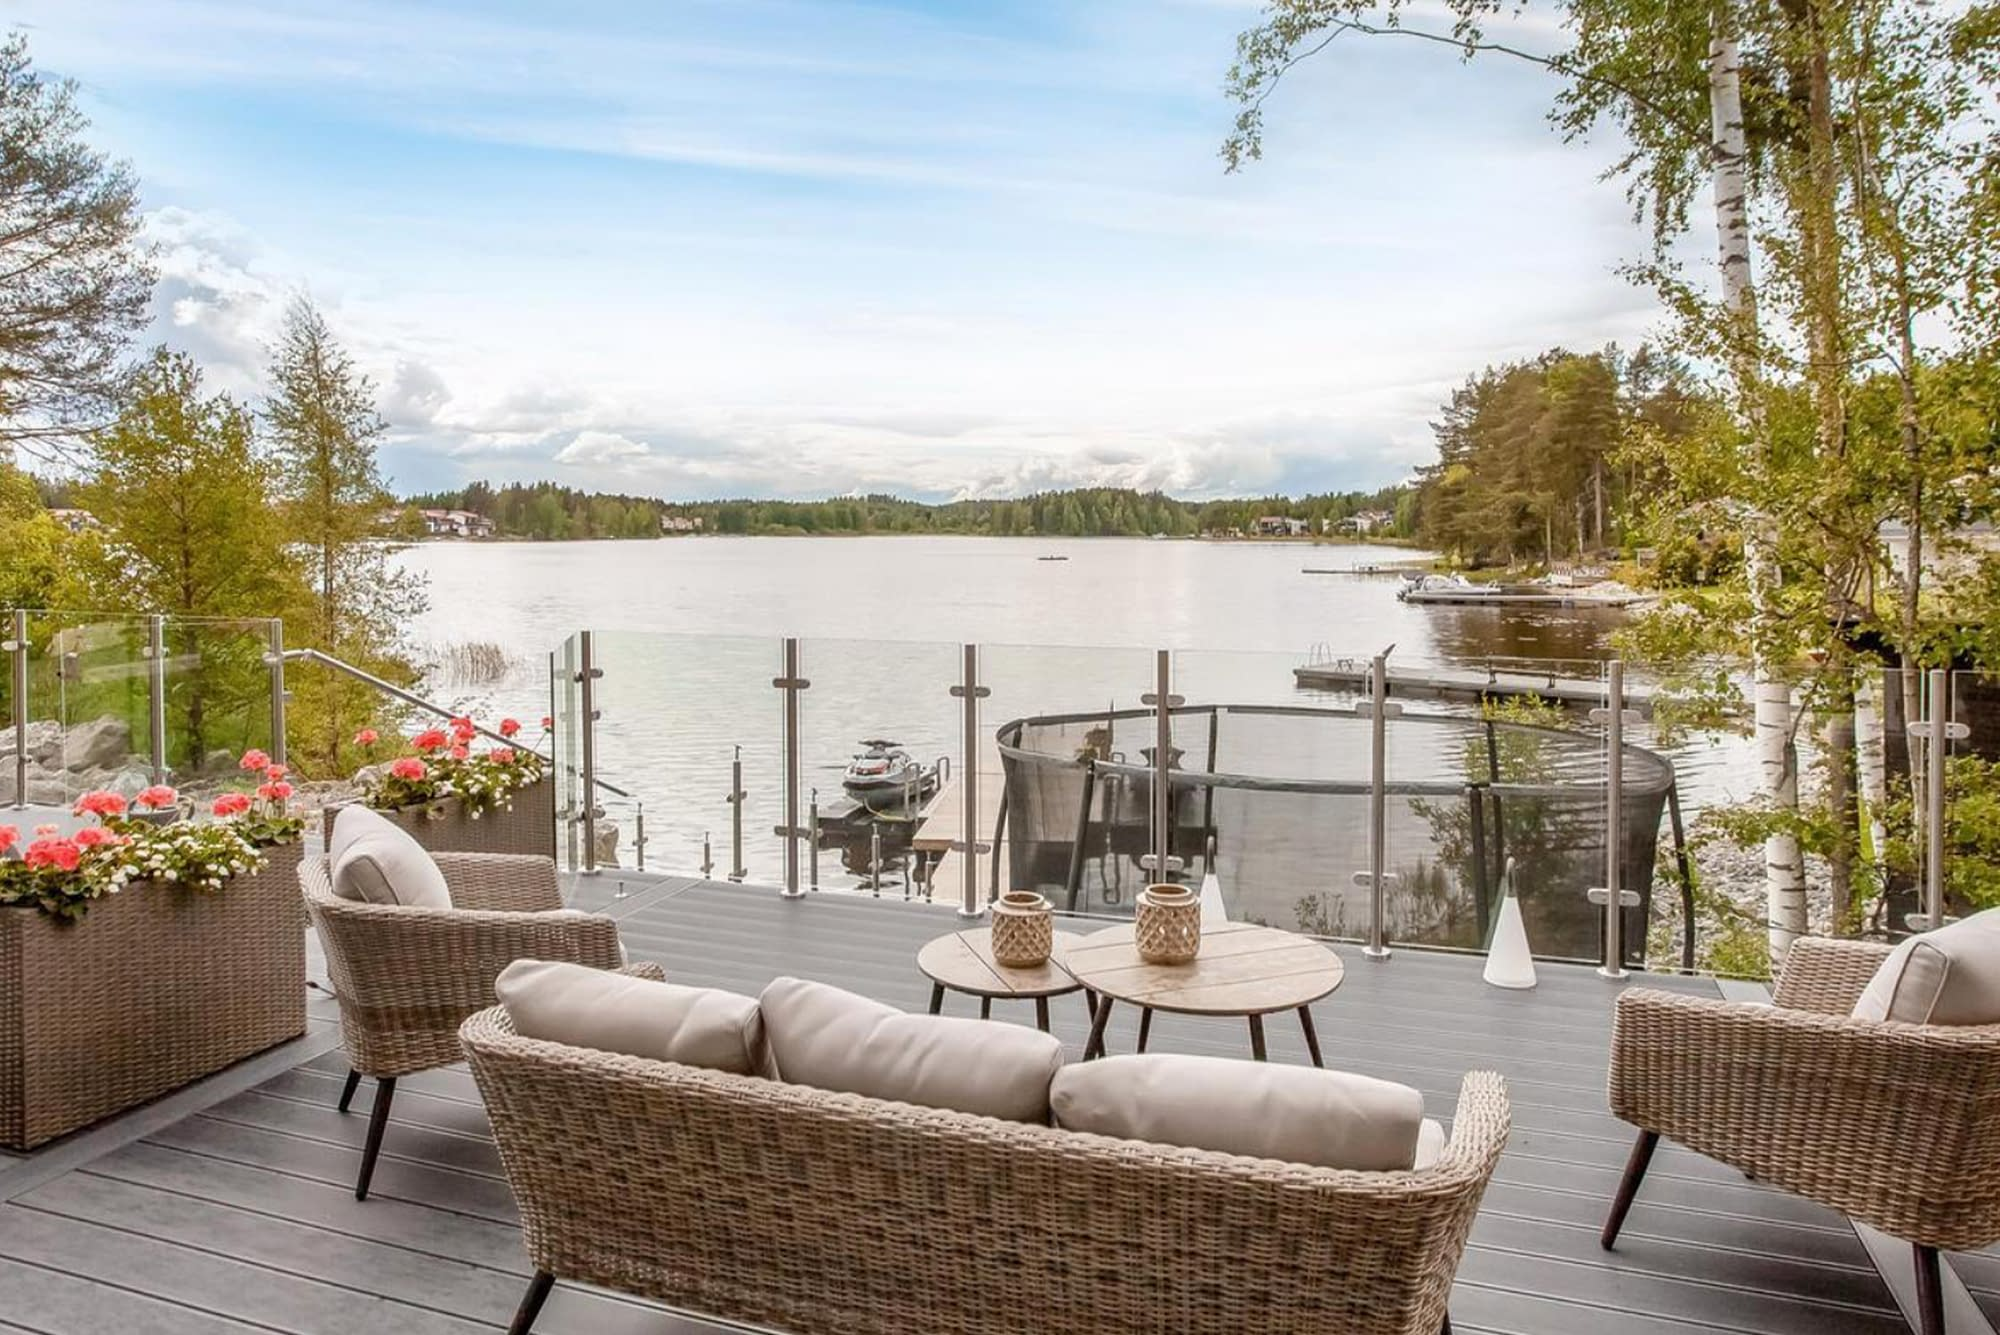 Semi-Framed Stainless Steel Ultimate Balustrade System Overlooking a Lake in Finland